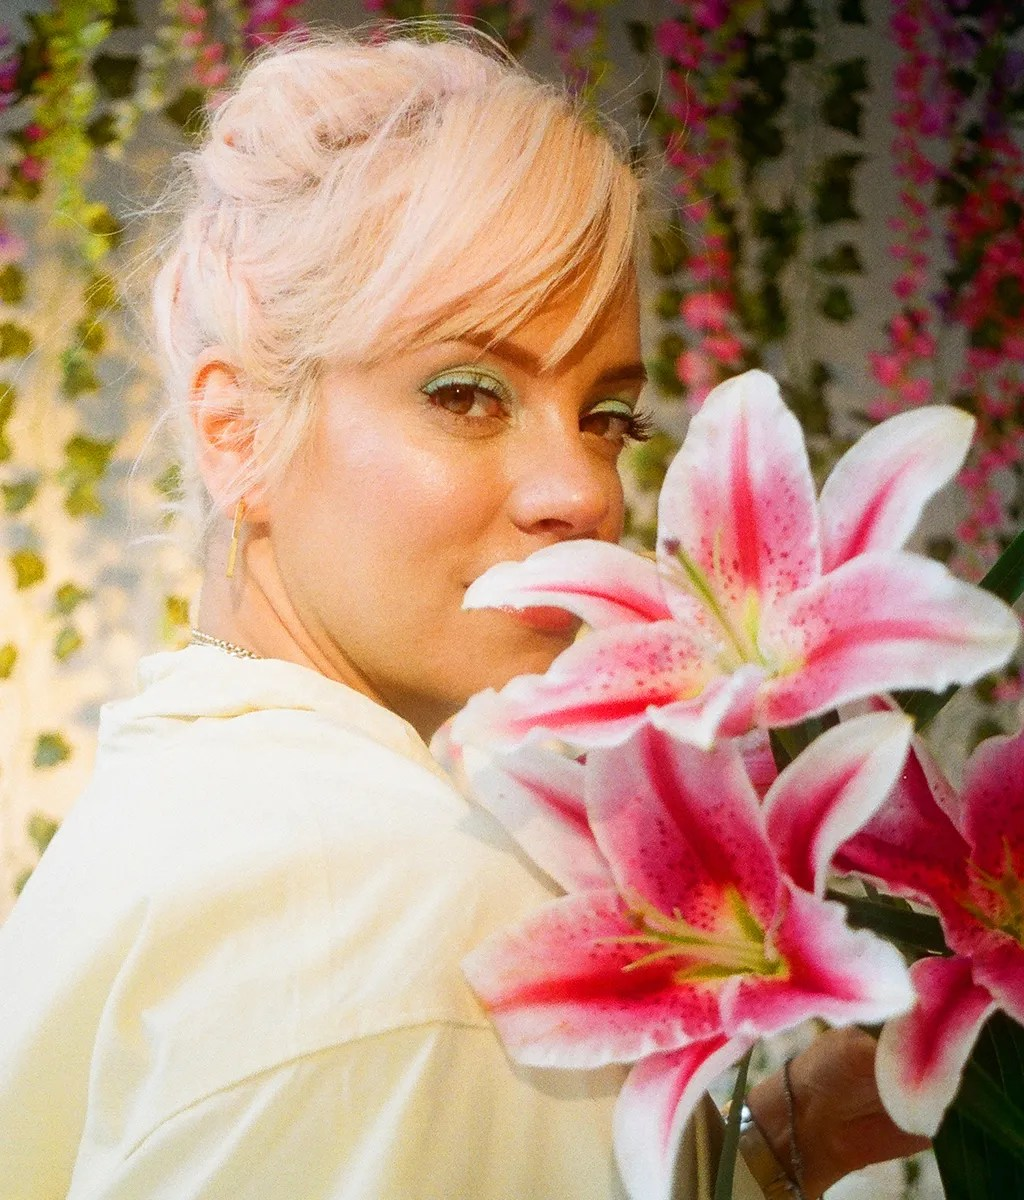 lily allen on her